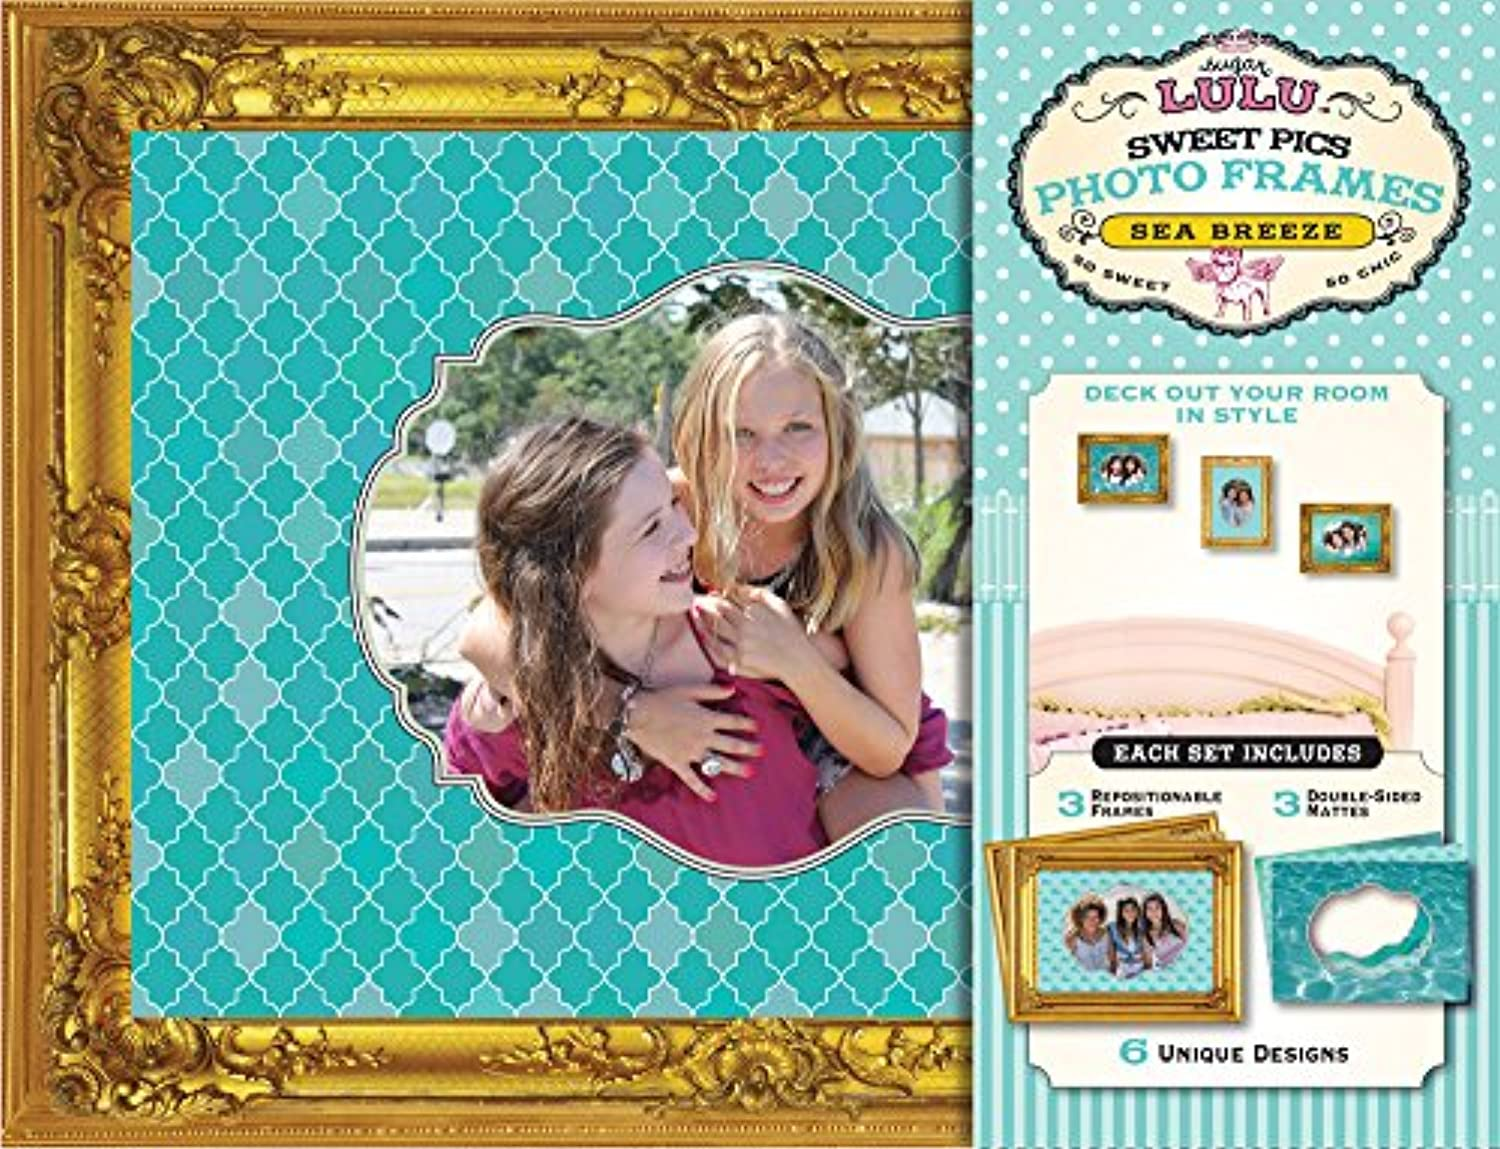 Sugar Lulu Sweet Pics Photo Frames Sea Breeze Novelty